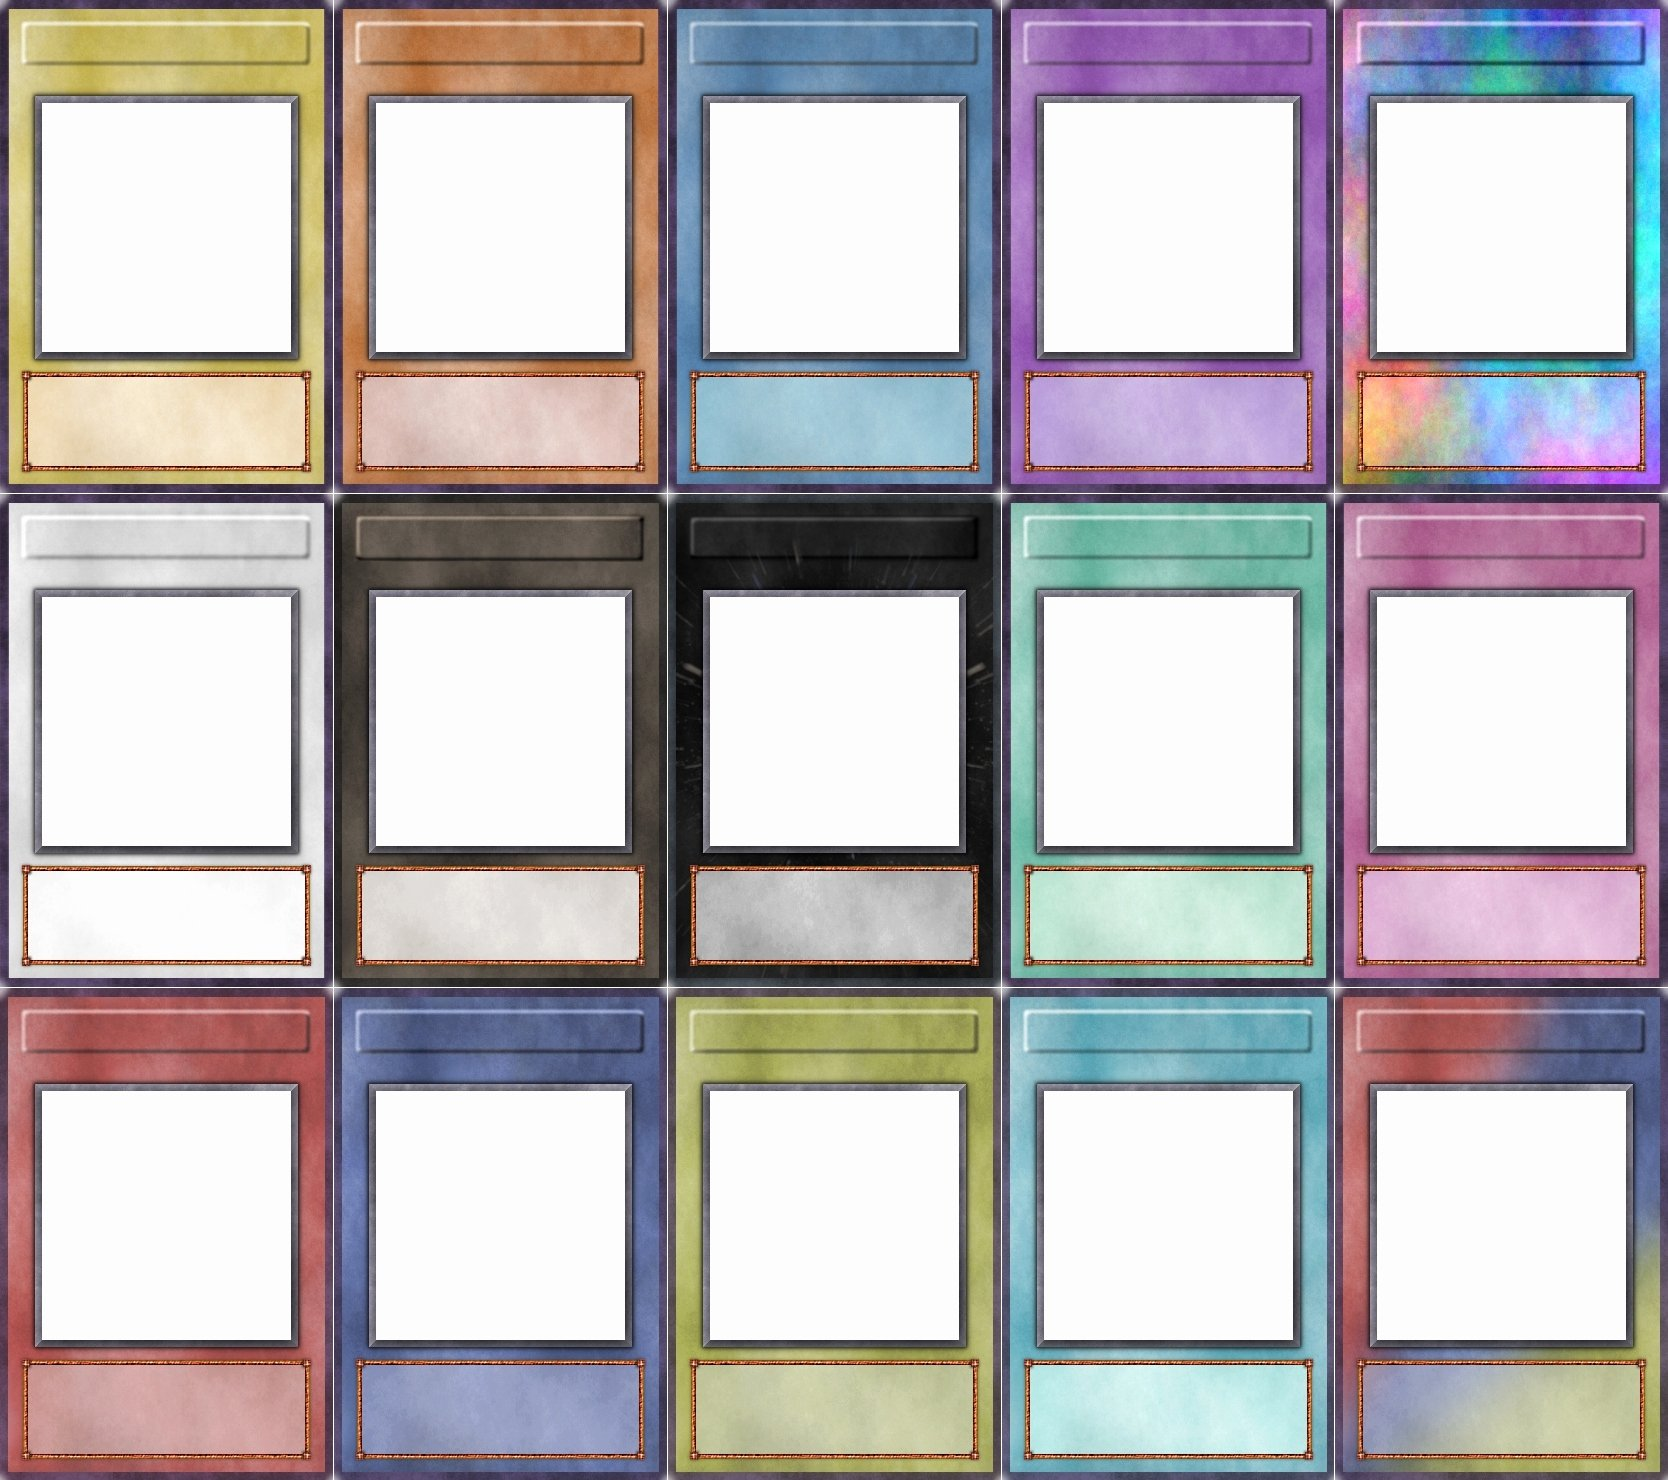 Word Trading Card Template Awesome Blank Trading Cards Template